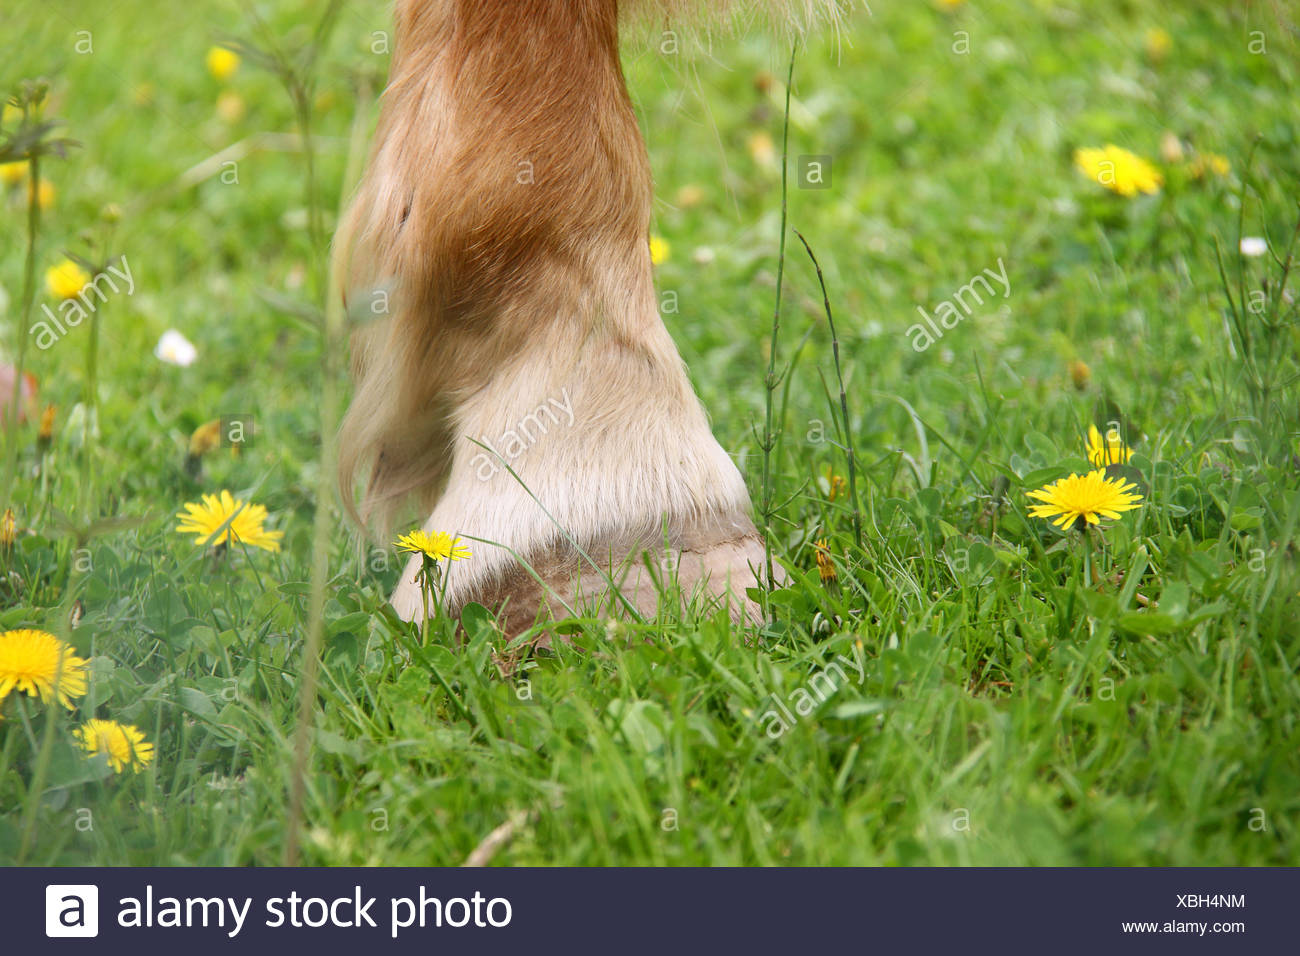 horse, flower meadow, hoofed animal, meadow, willow, horse, horn, flower Stock Photo